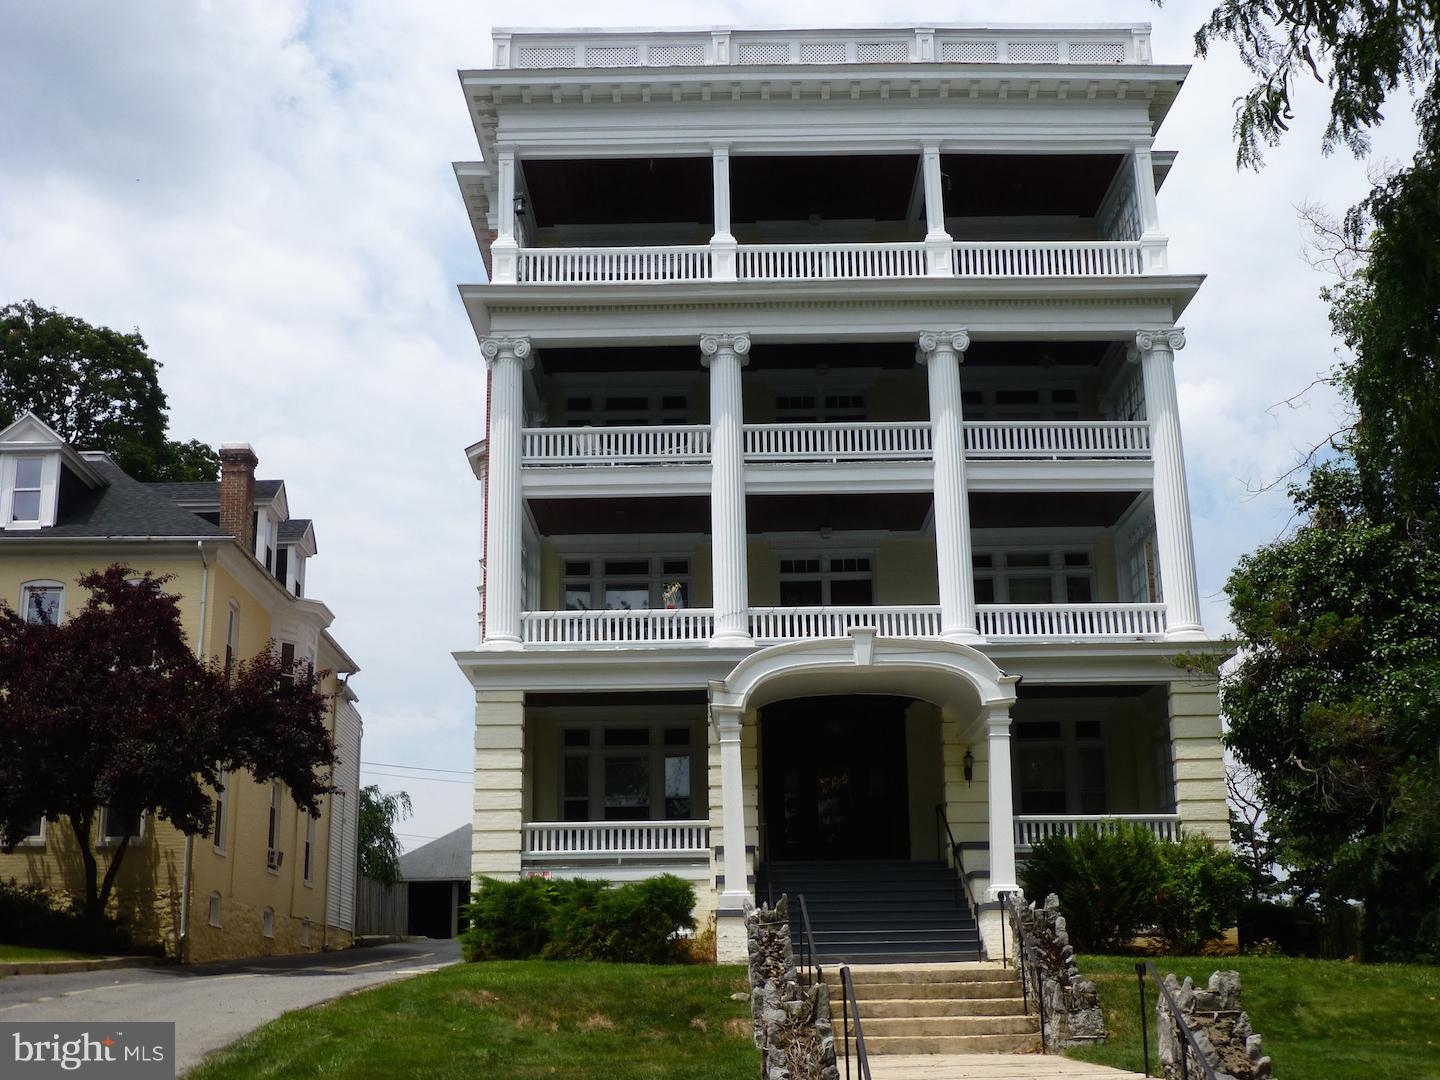 This Prestigious and unique 4 stories Victorian building Commonly known as the Mount Royal Apartments, is located in the North End of Hagerstown in a quiet suburban Street and features 9 over-sized all 2bed/1bath, separate dining room, living room  apartment units with central A/C containing 1,080+/- SF on each